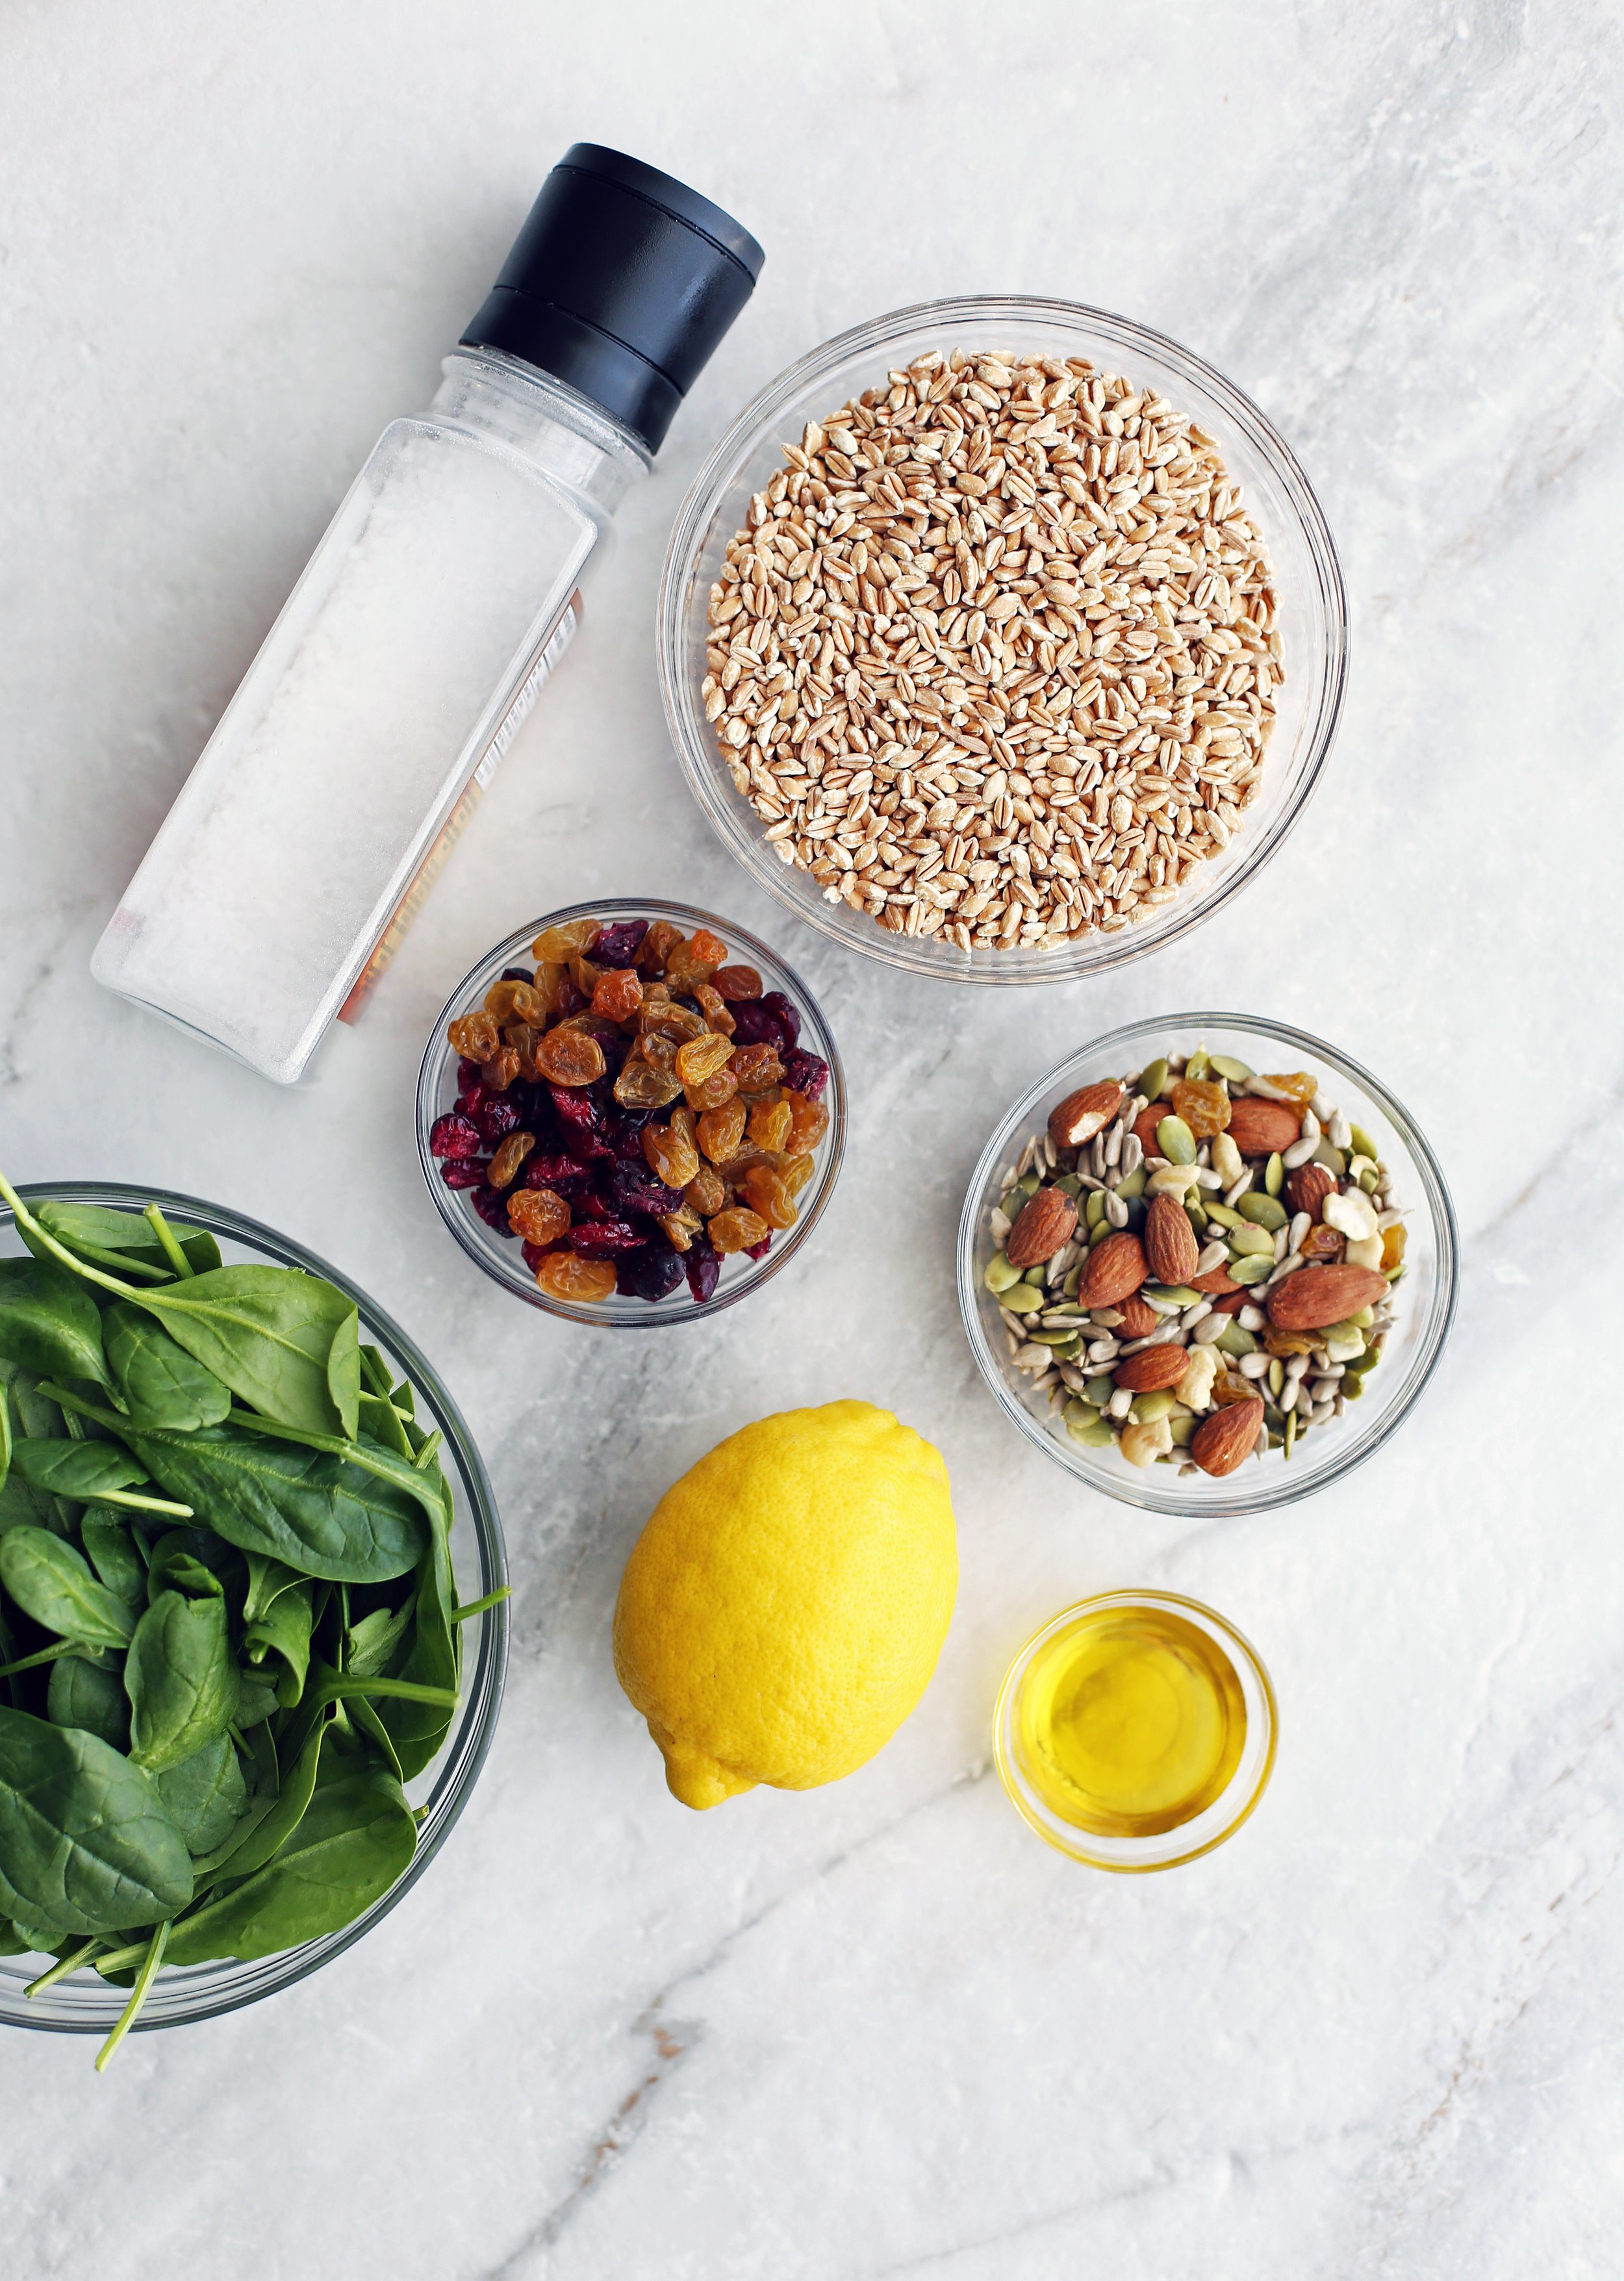 Bowls of baby spinach, dried fruit, nuts and seeds, farro, olive oil along with a lemon and a salt shaker.